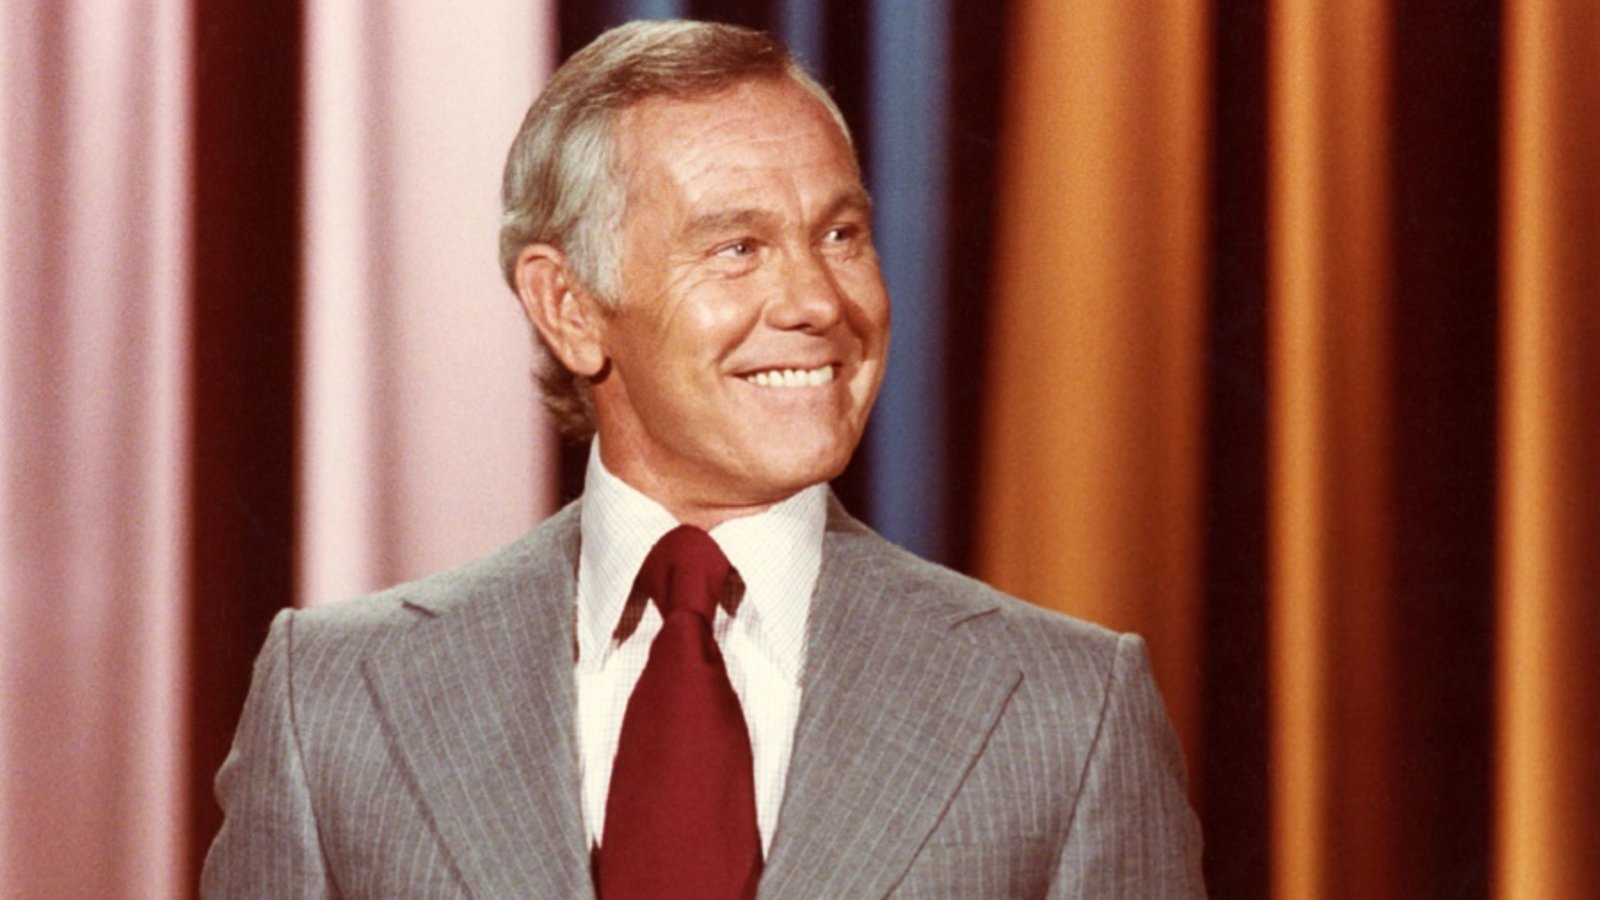 Johnny Carson - King of Late Night